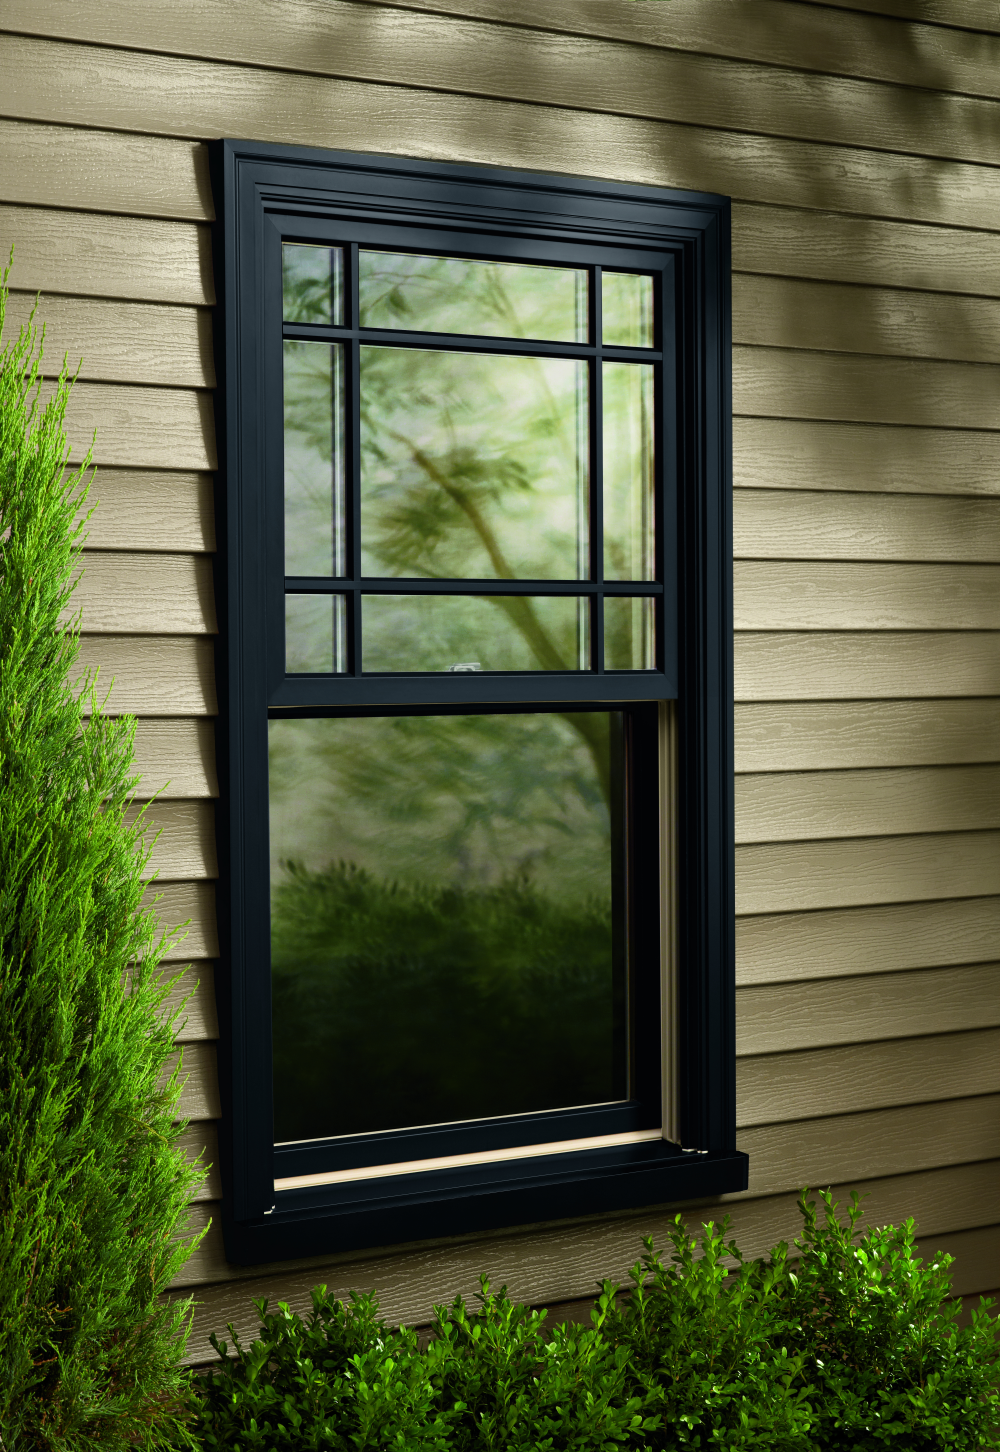 Exterior house windows design - Find This Pin And More On Windows